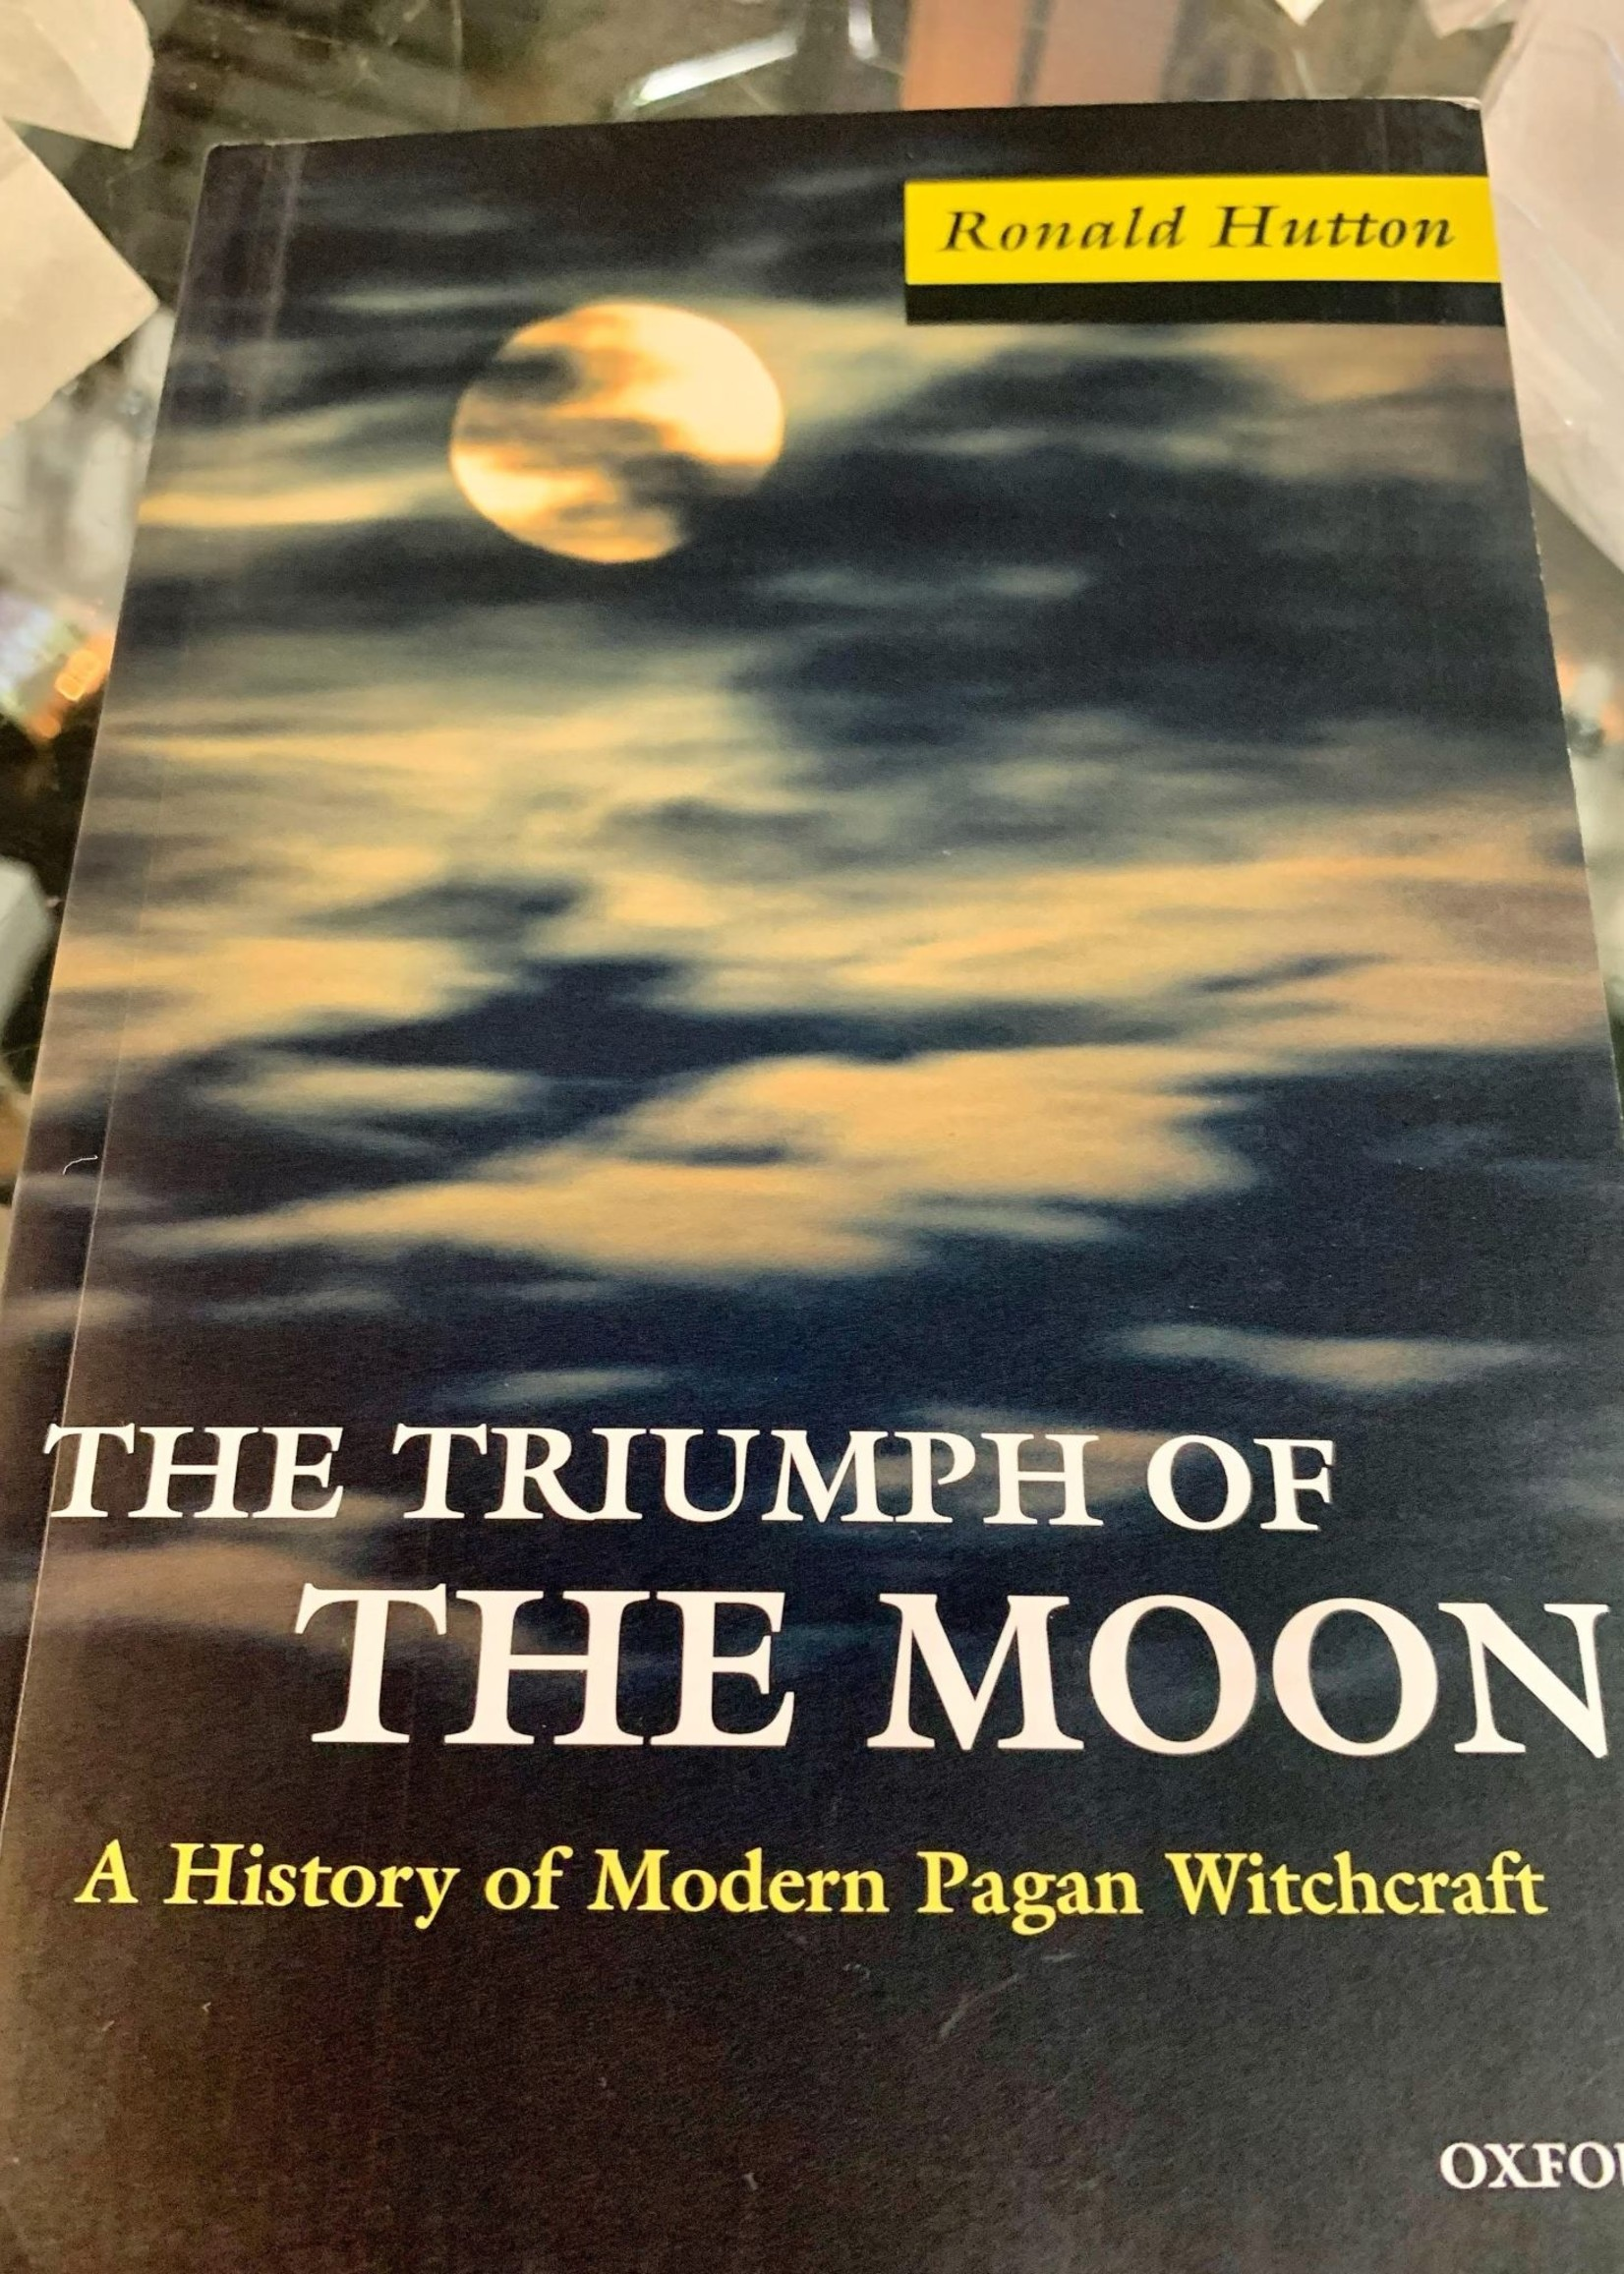 The Triumph of the Moon A History of Modern Pagan Witchcraft Second Edition  - Ronald Hutton